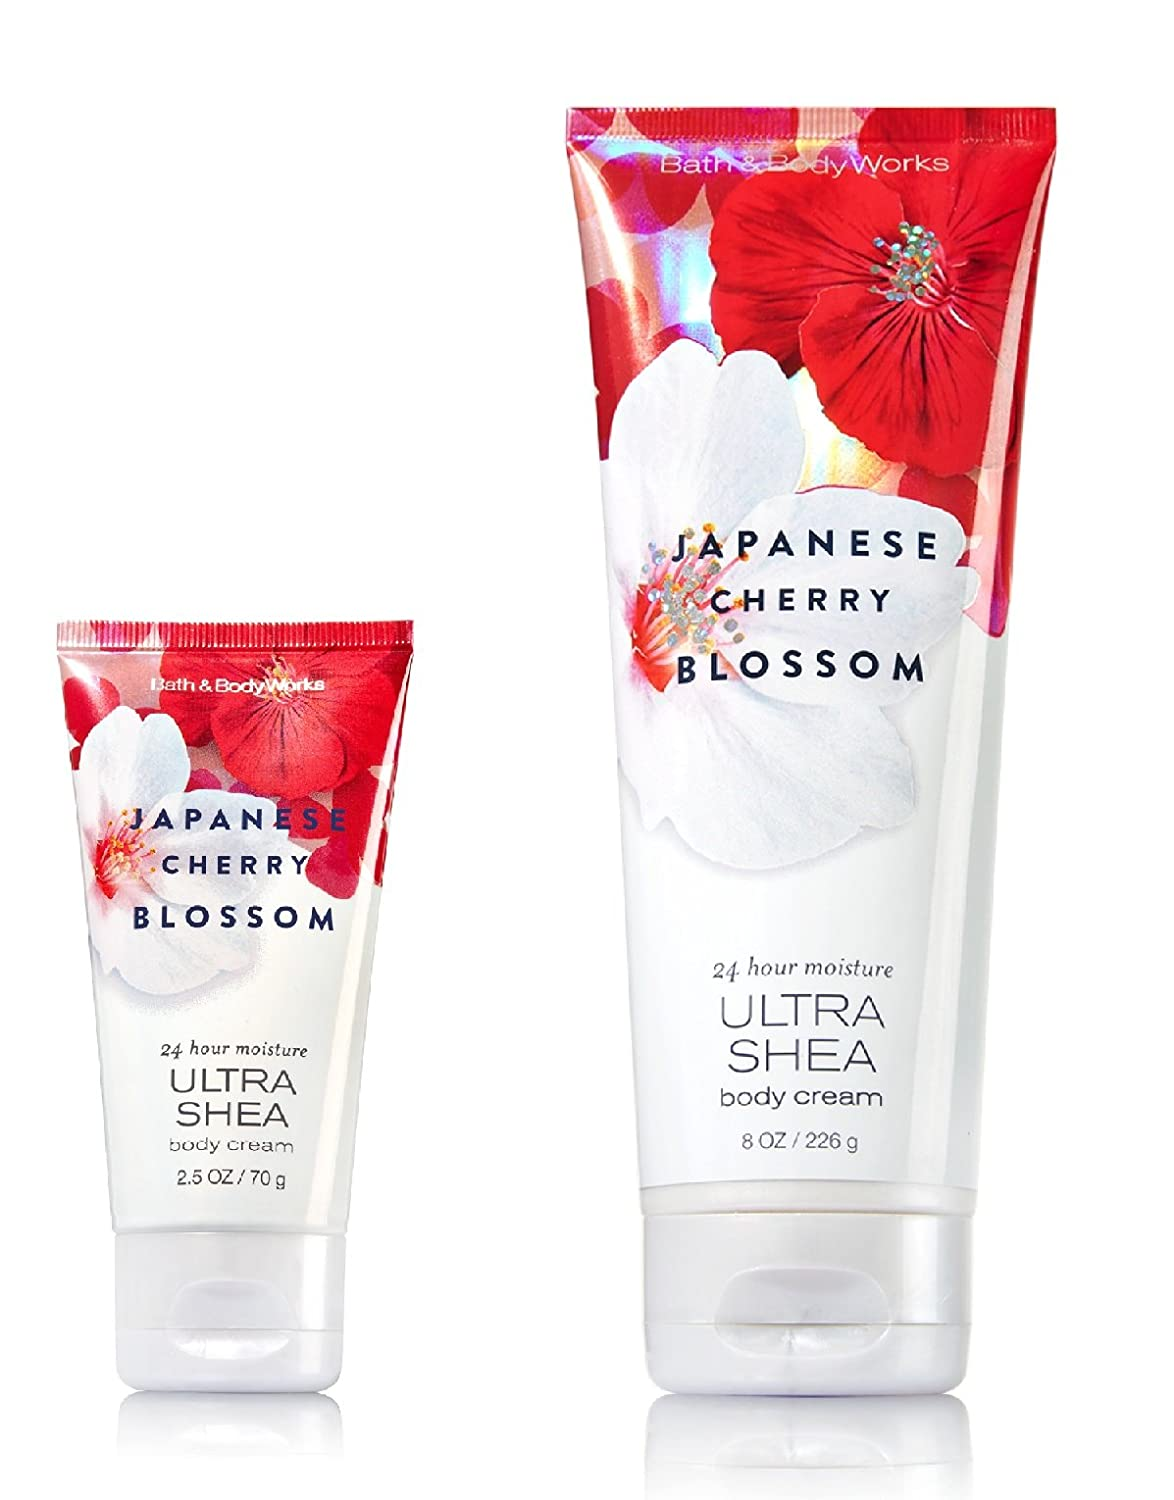 Bath & Body Works One for home & One for Travel – ULTRA SHEA Body Cream Set – Japanese Cherry Blossom